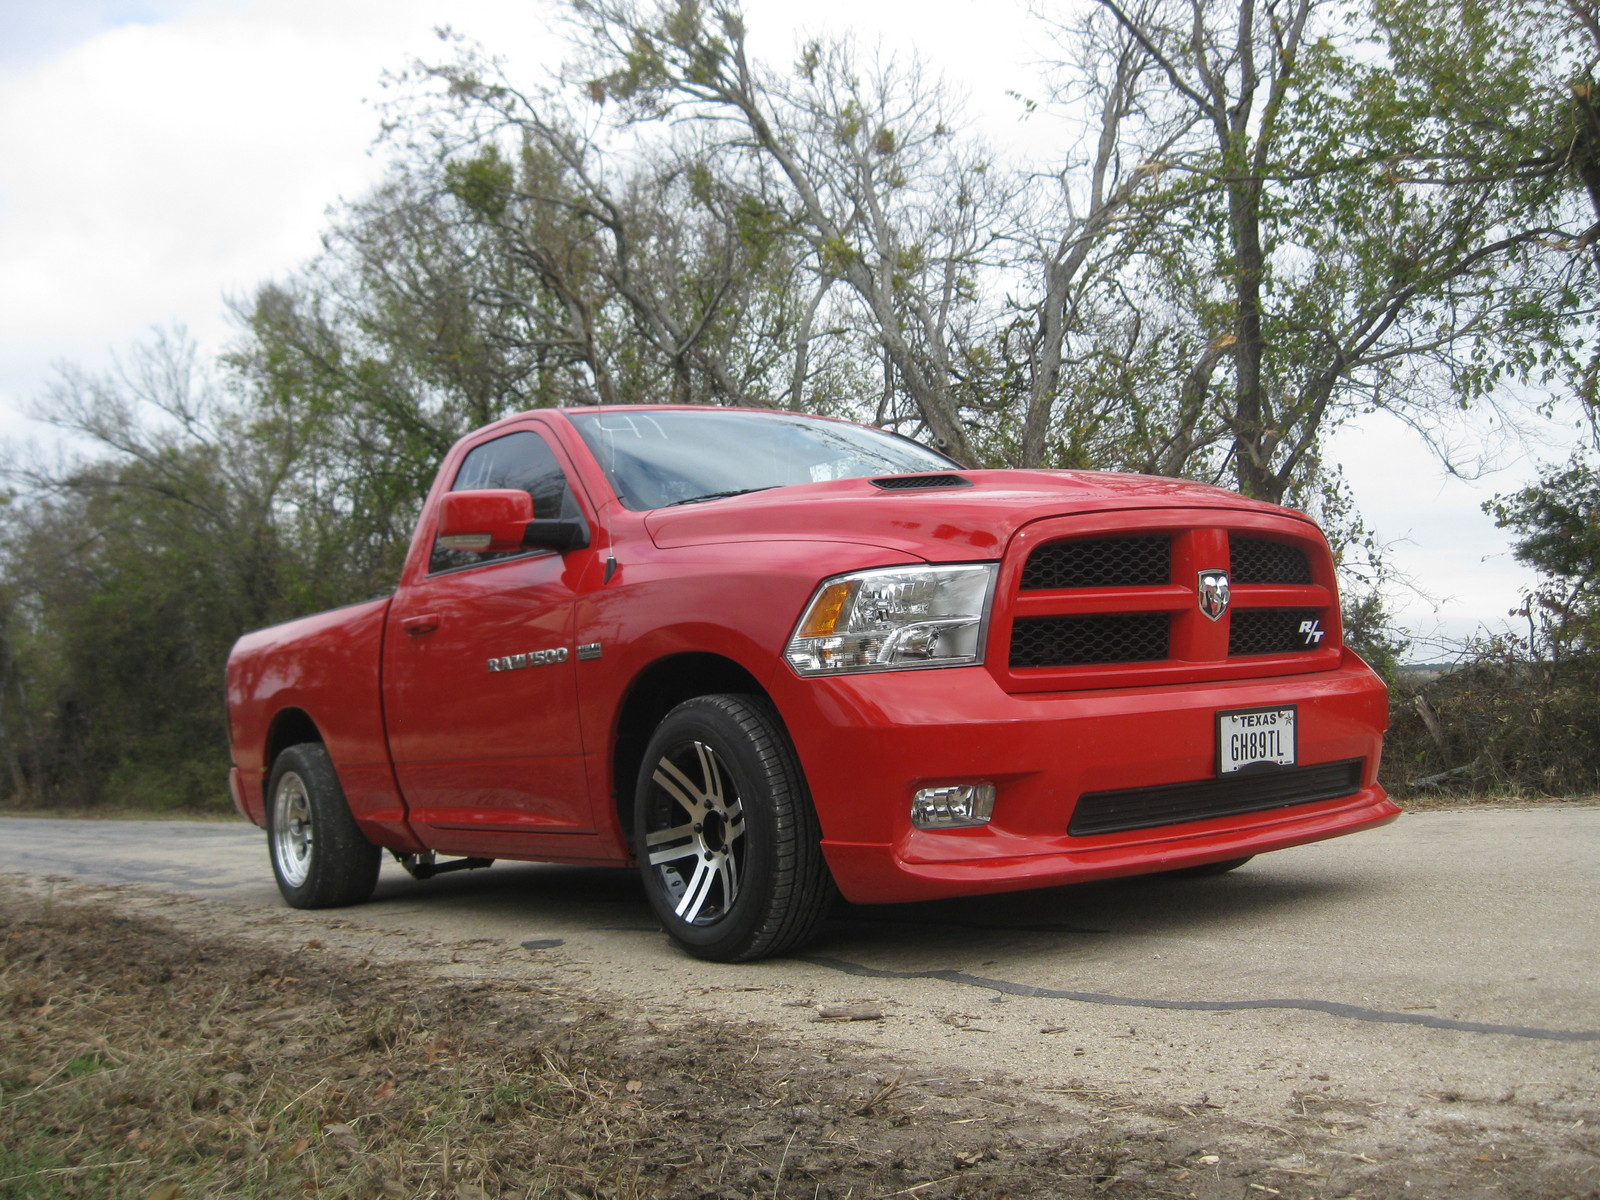 2011 Red Dodge Ram 1500 R/T picture, mods, upgrades